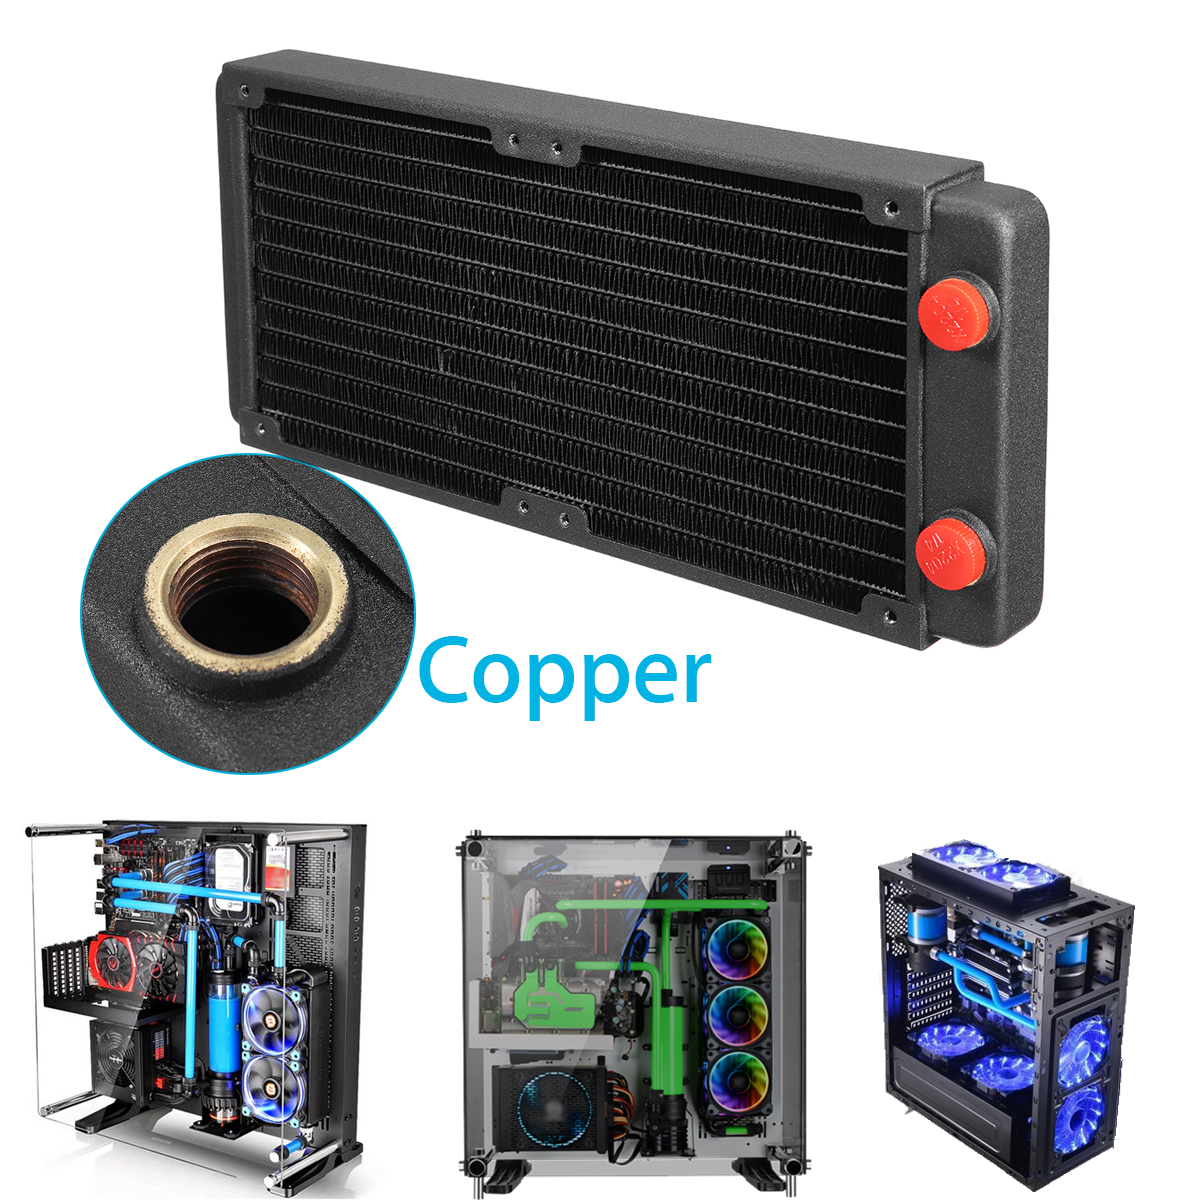 Copper Water Cooling 240mm Computer CPU Cooler Radiator Heatsink Radiator Exhaust Heat Exchanger Water Cooling Cooler